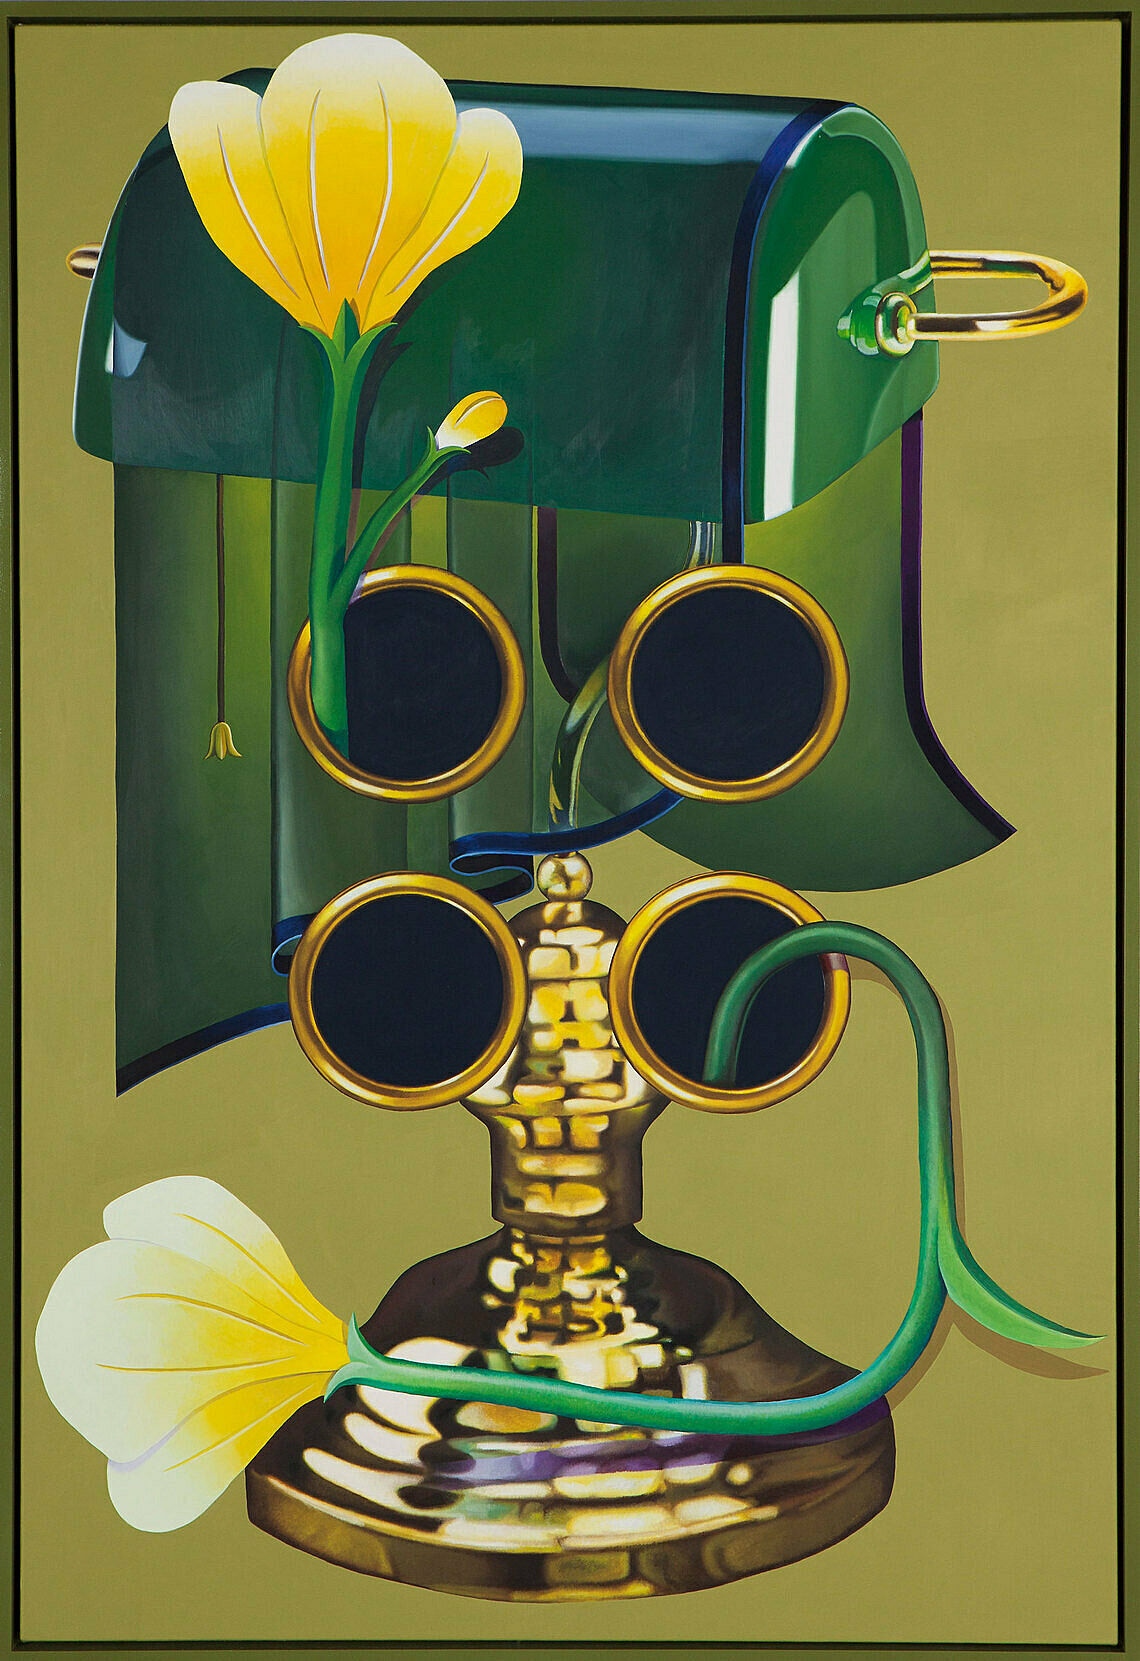 A painting by Orion Martin. A lamp, flowers, and flat planes do not spatially resolve.